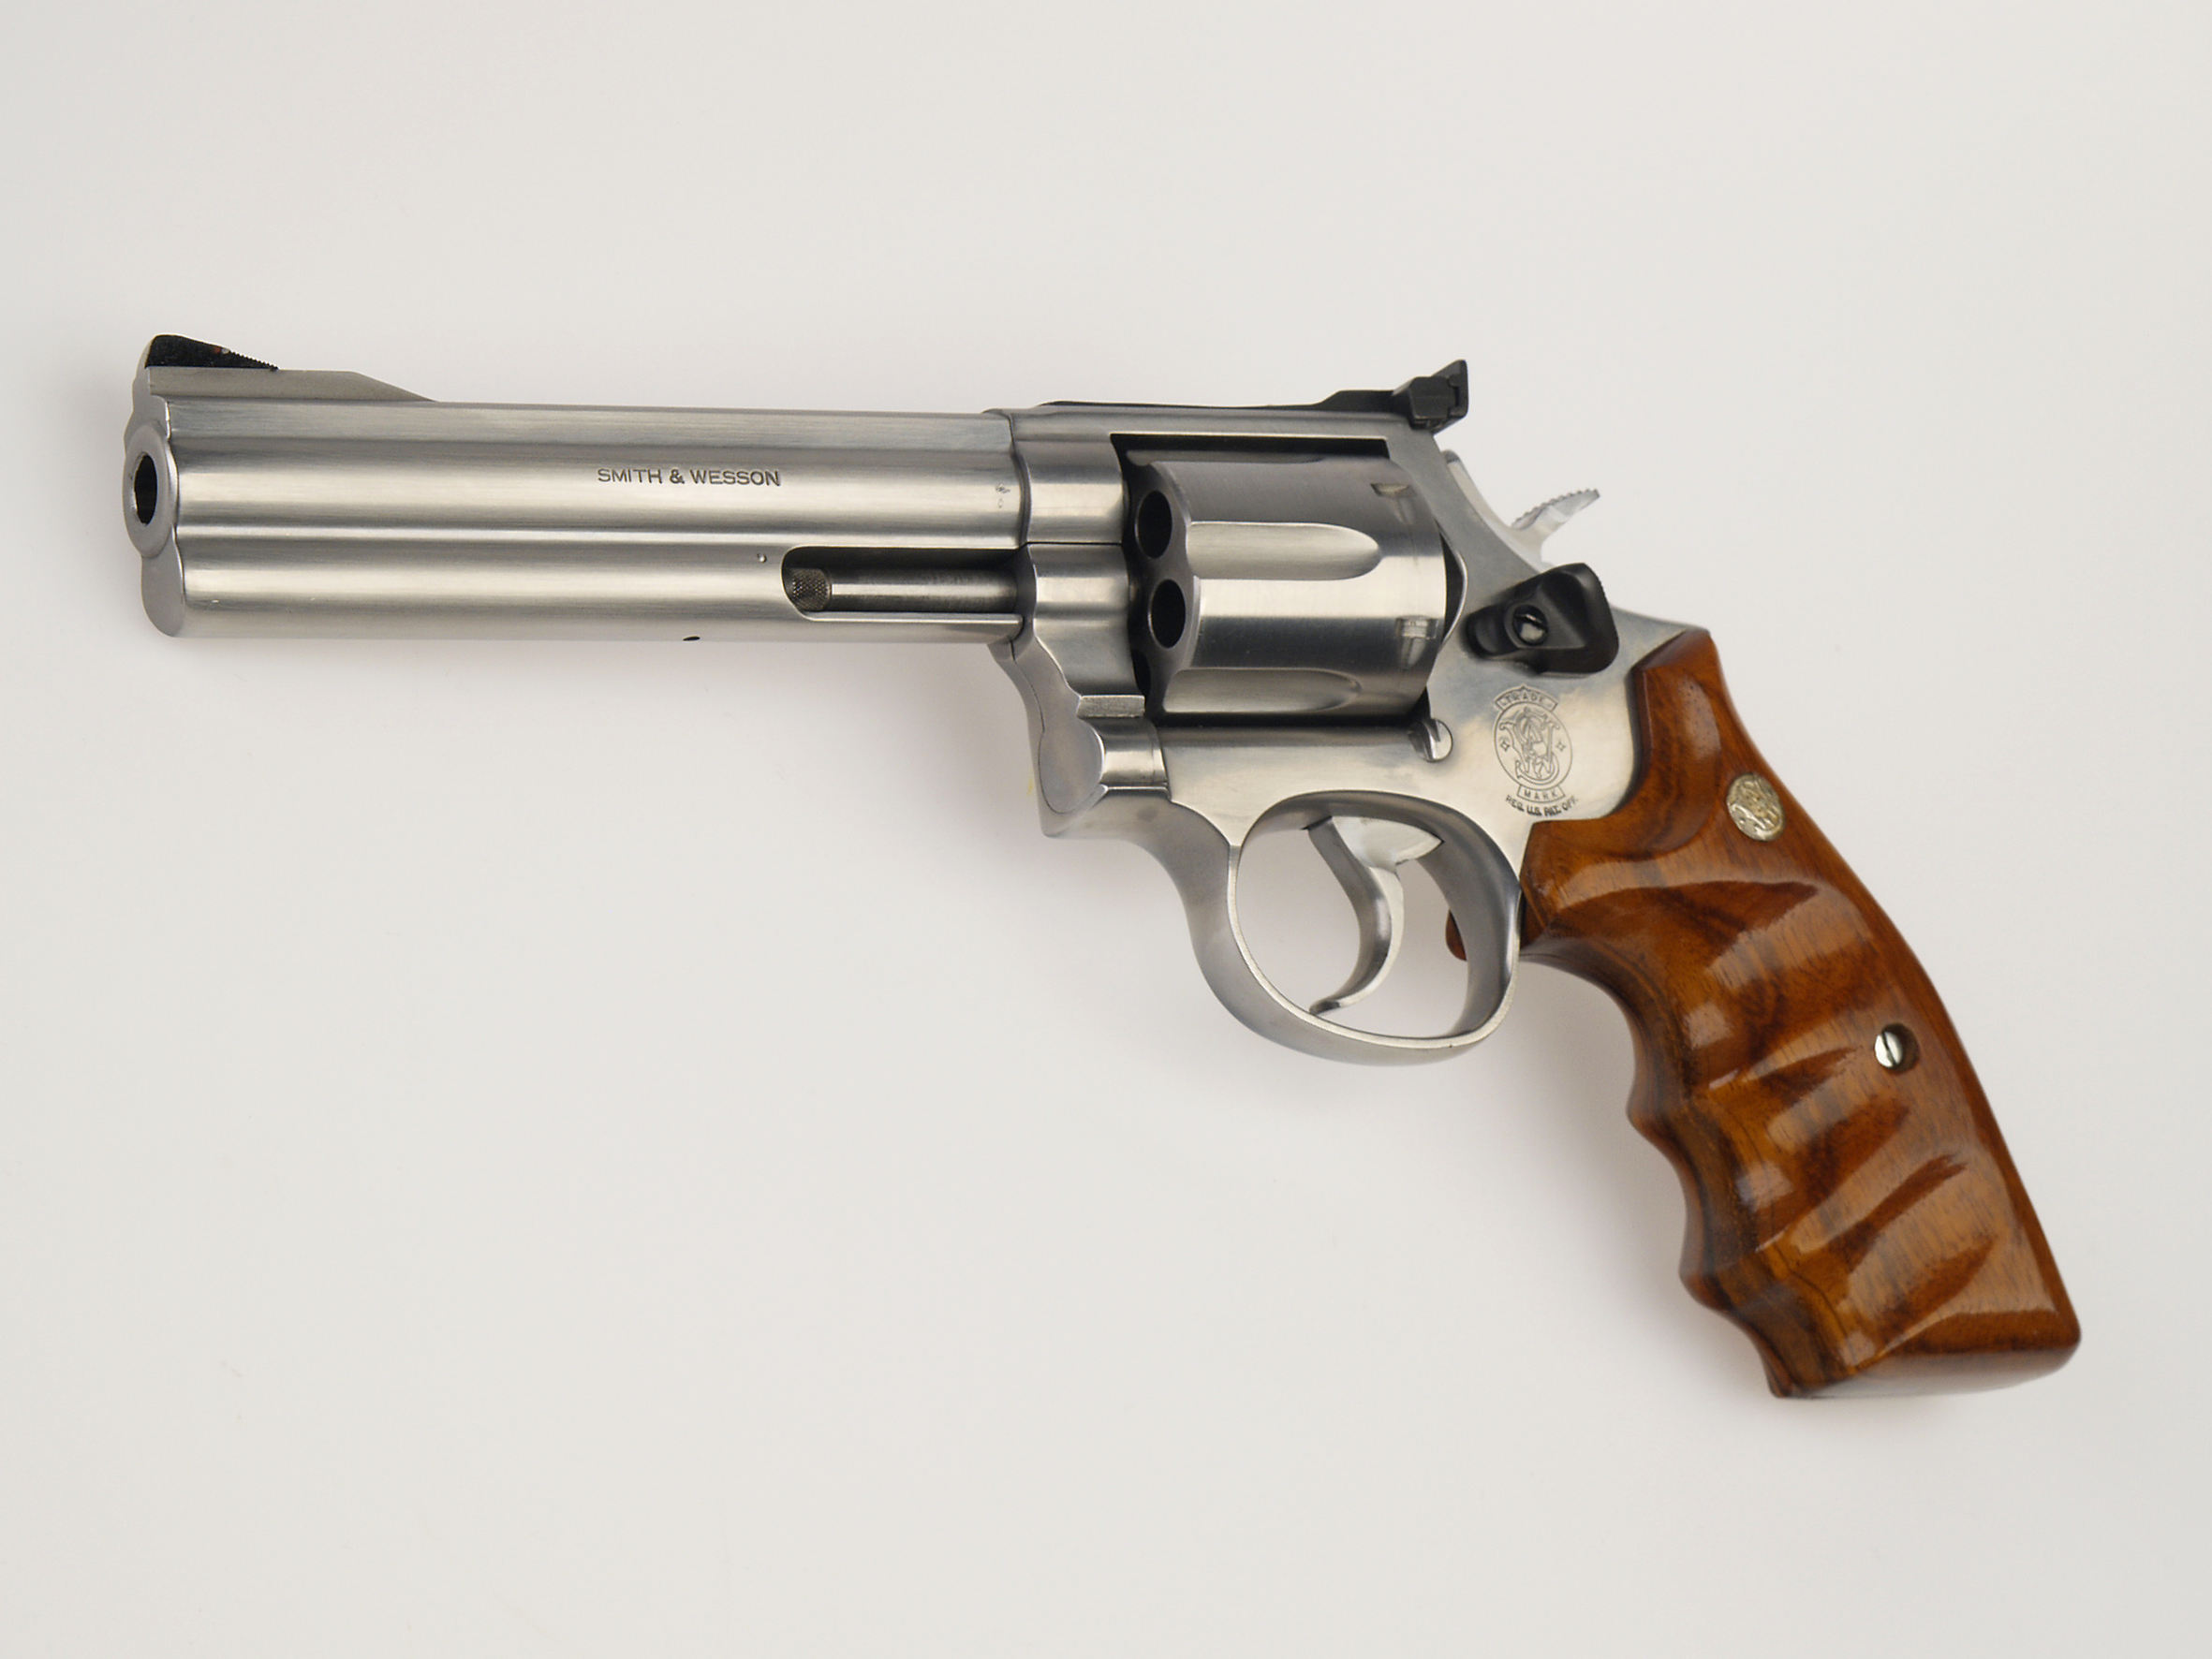 Weapons   Smith Wesson Model 29 Revolver Wallpaper 2362x1772